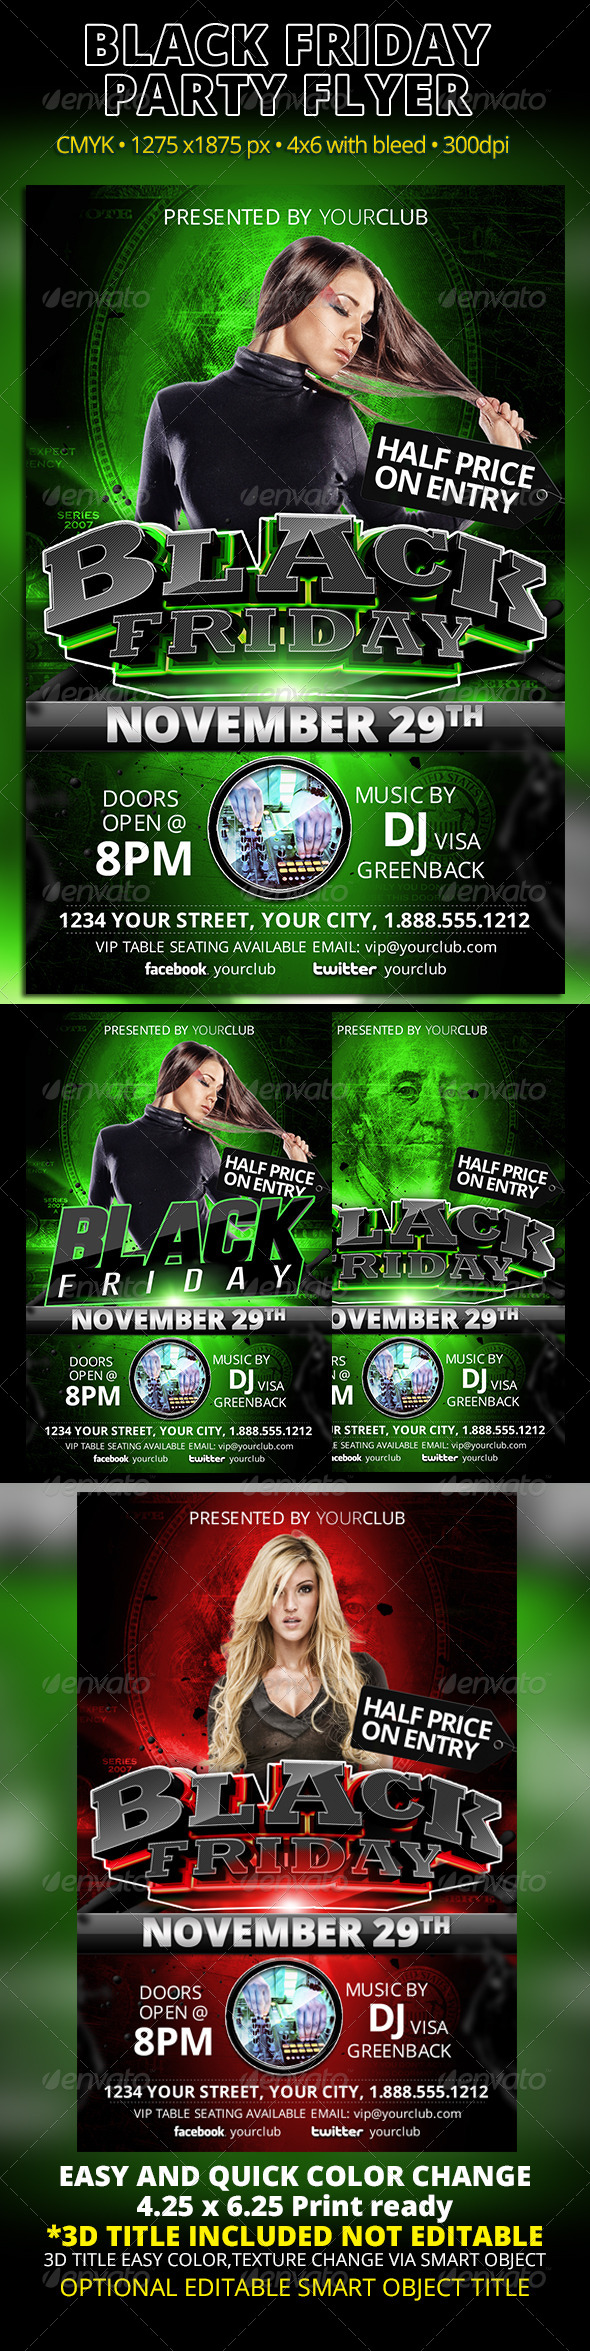 GraphicRiver Black Friday Party Flyer 5997737